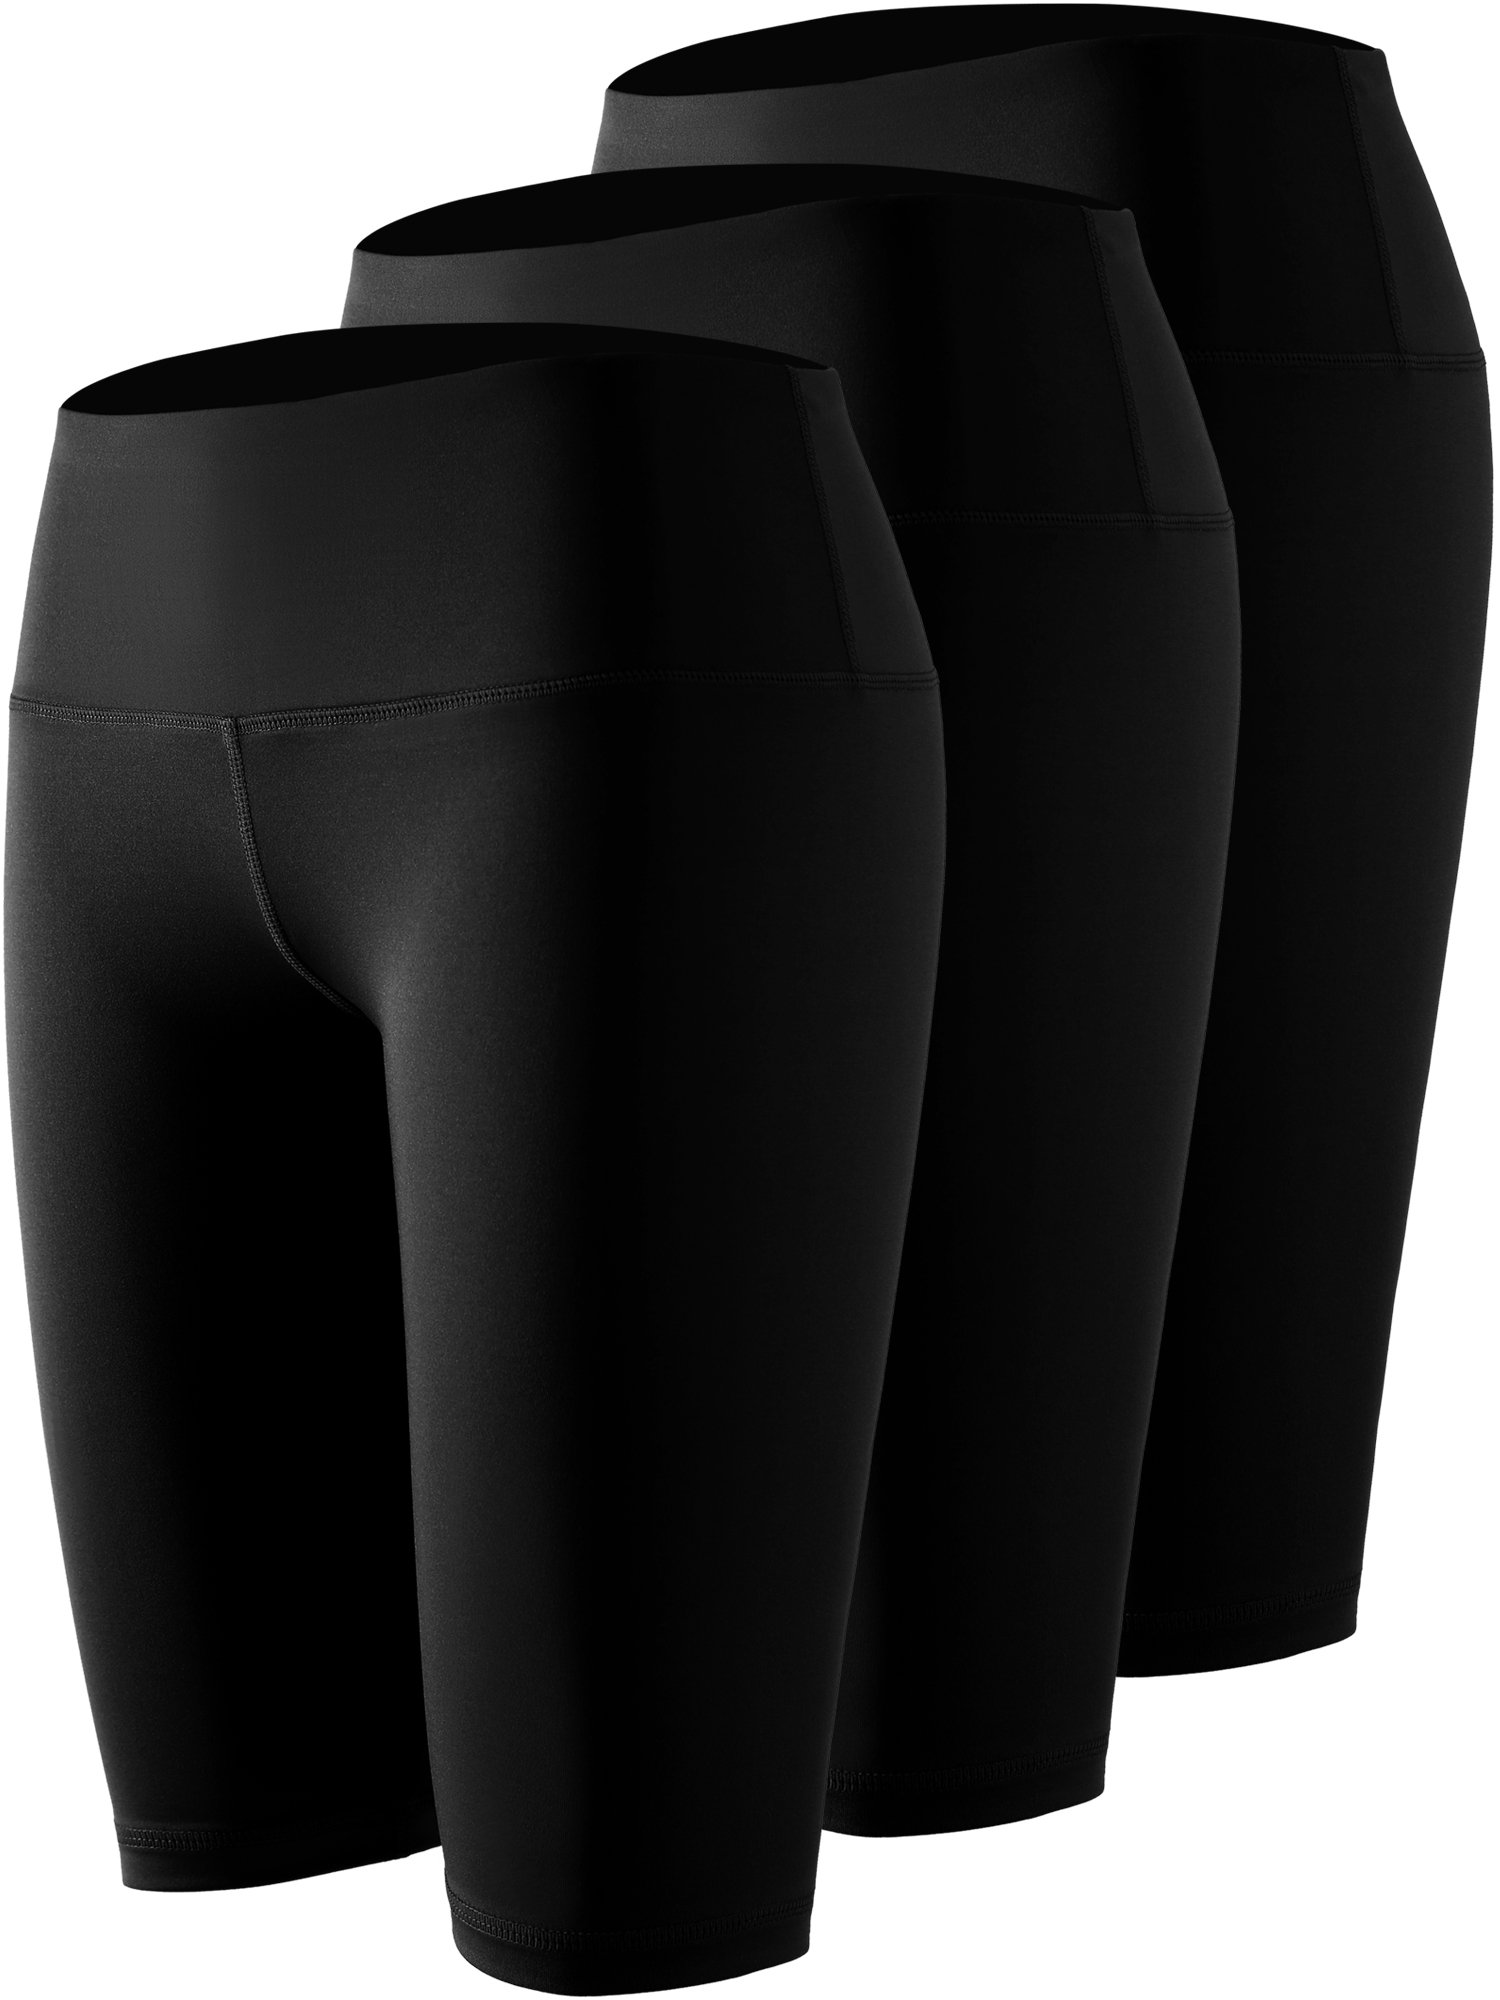 Cadmus Women's High Waist Workout Running Compression Shorts with Pocket